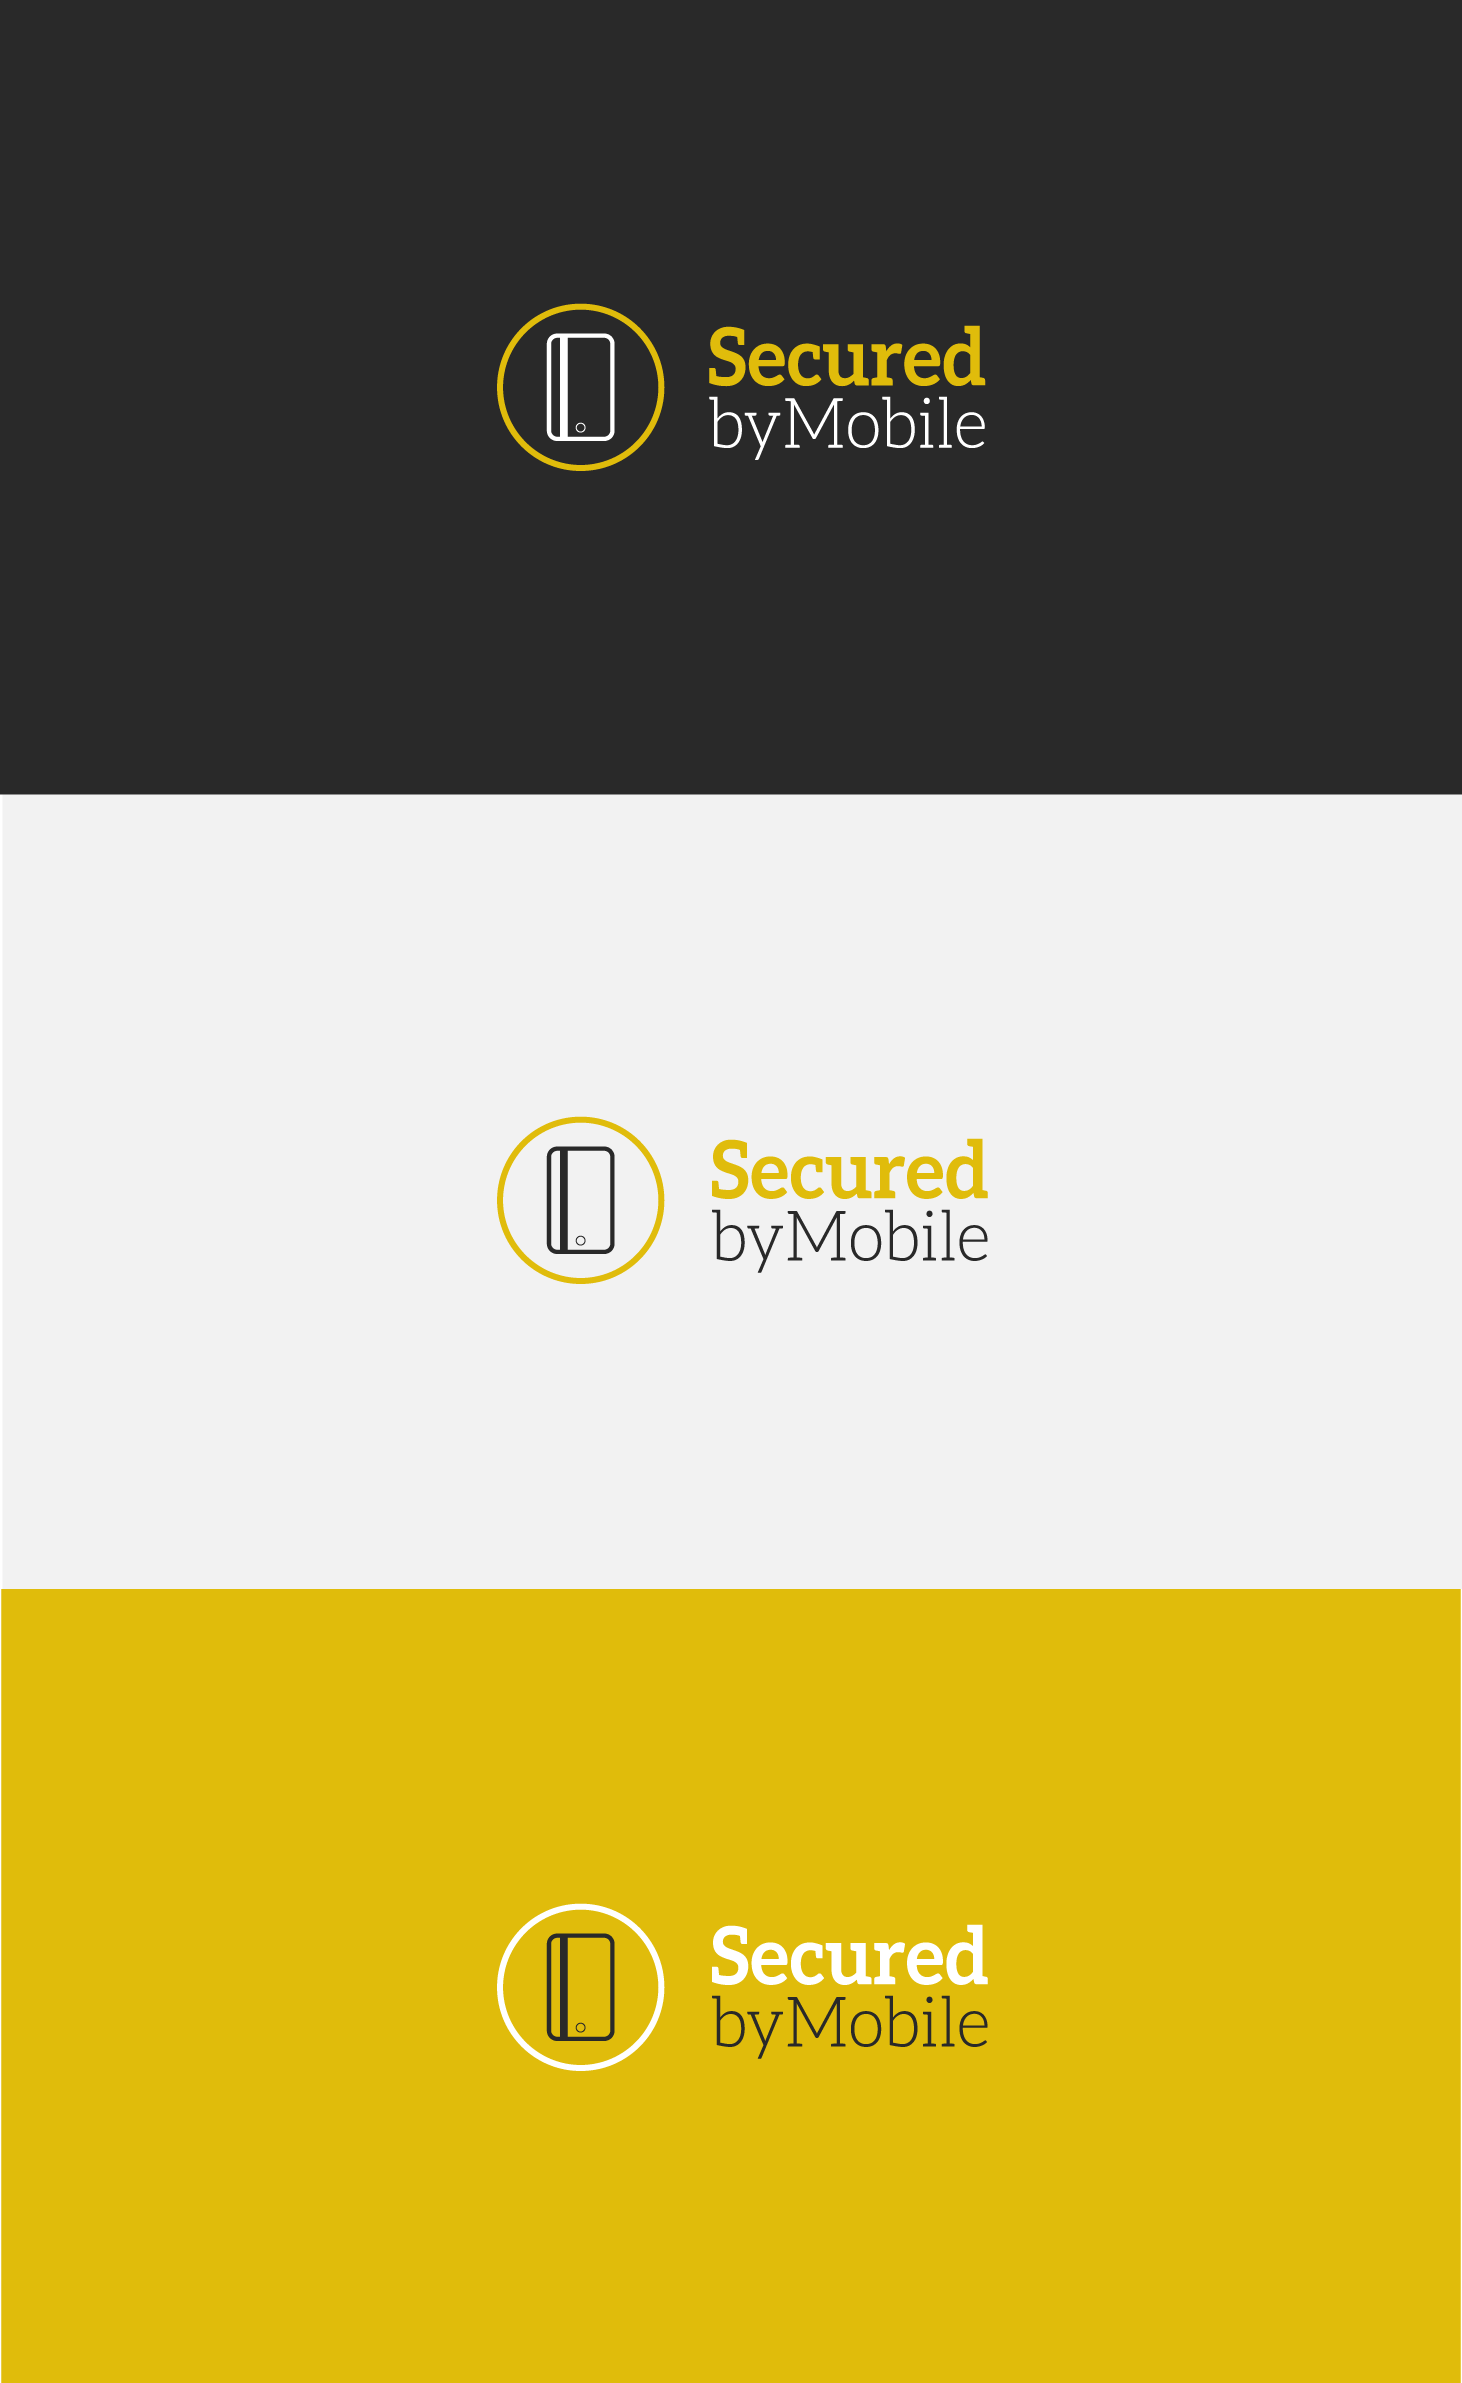 Secured by Mobile needs a new logo